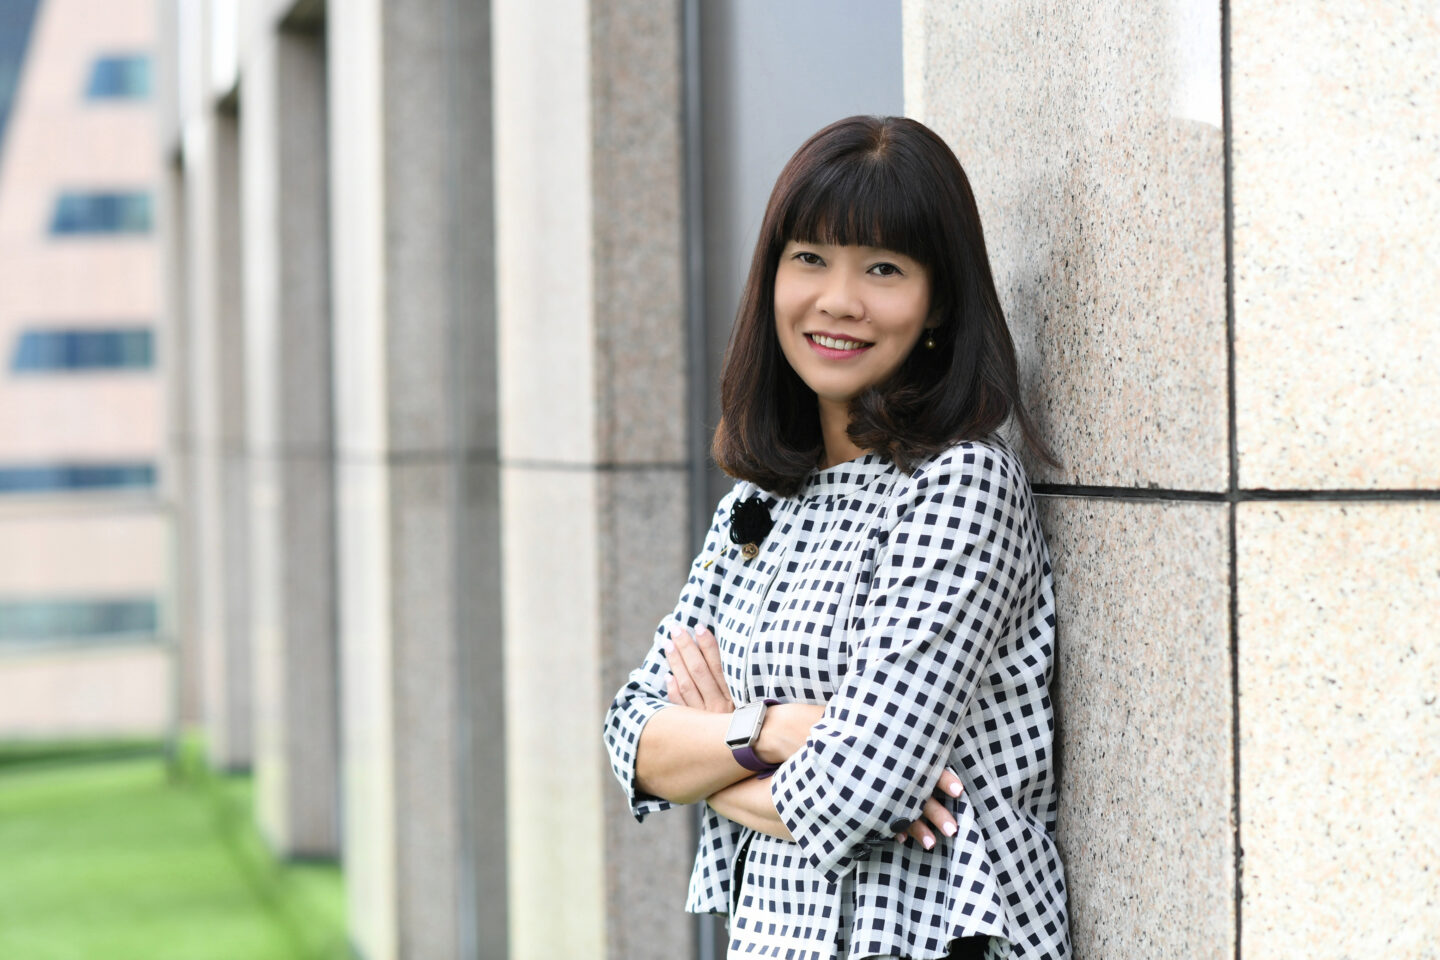 Wong Sze Keed: Companies Need To Create A Culture Of Putting People's Overall Well-Being First